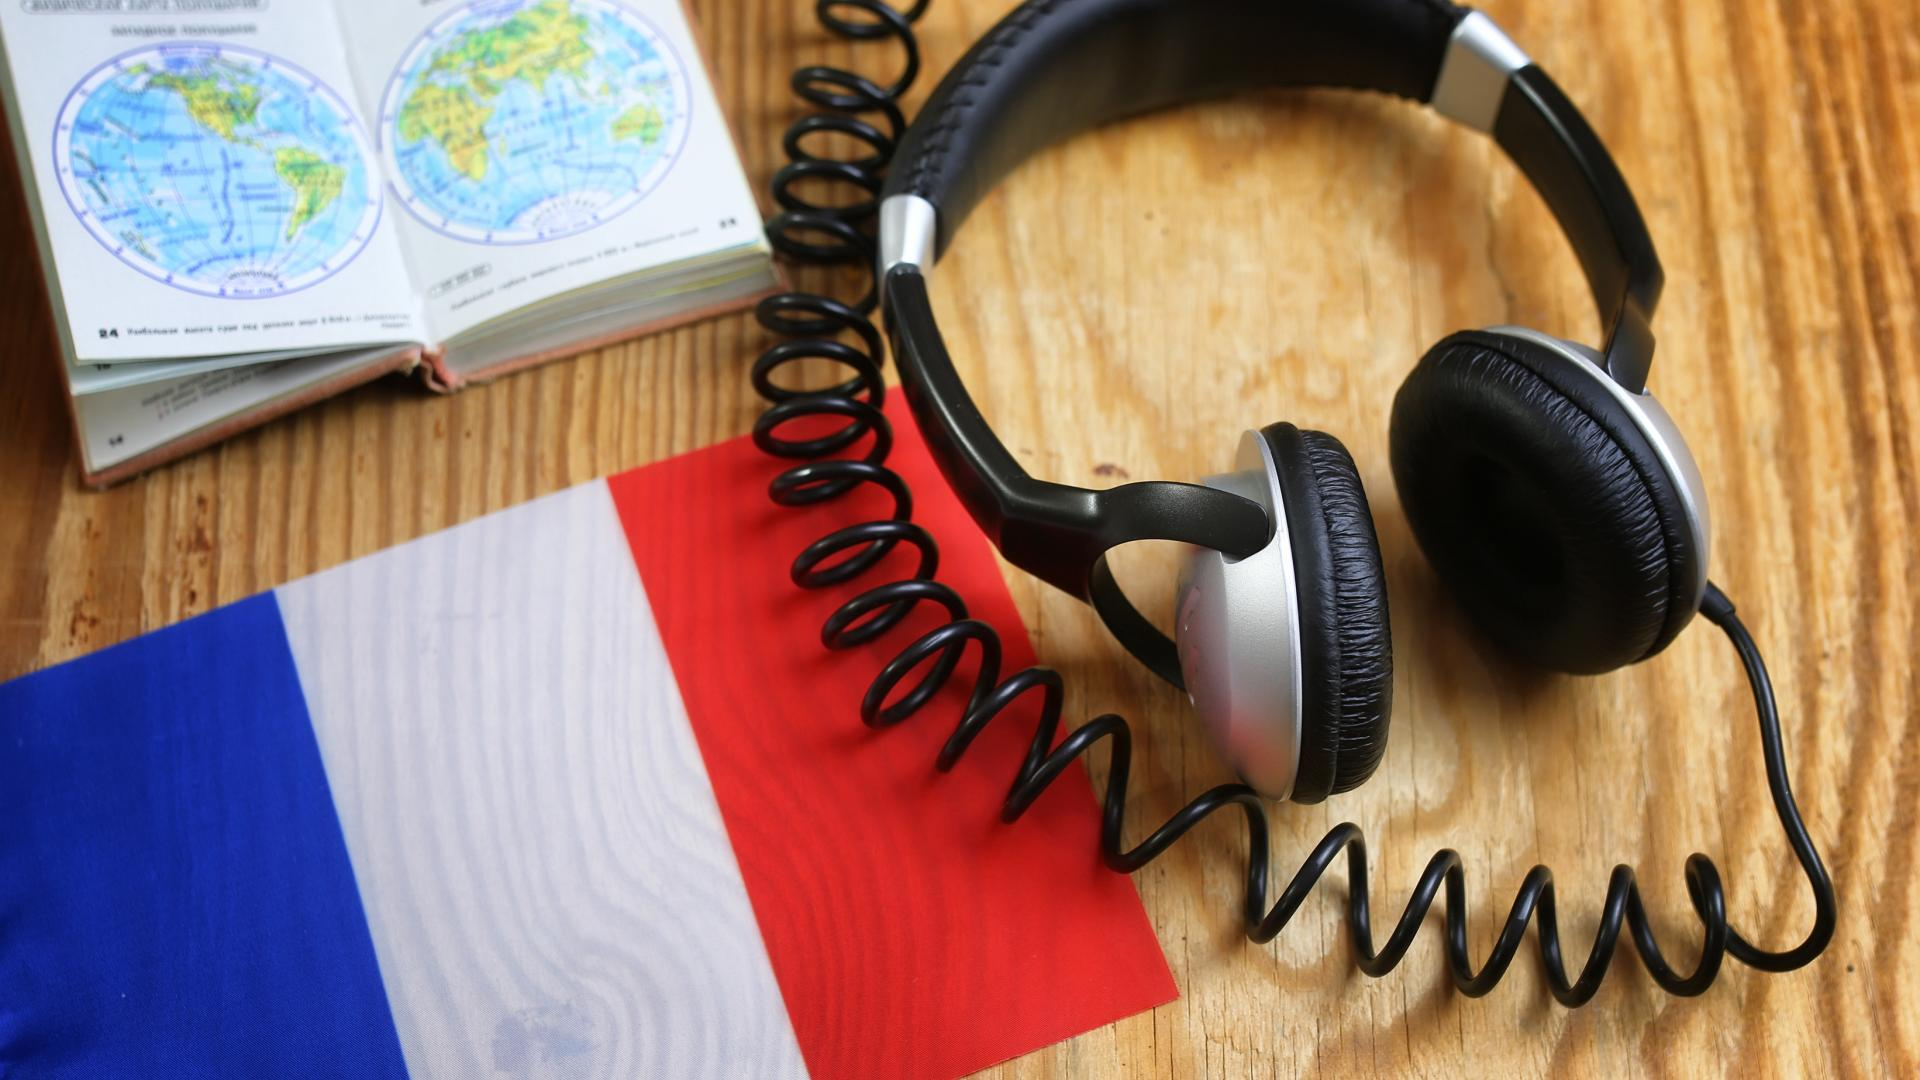 Headphones and book on a desk with a French flag